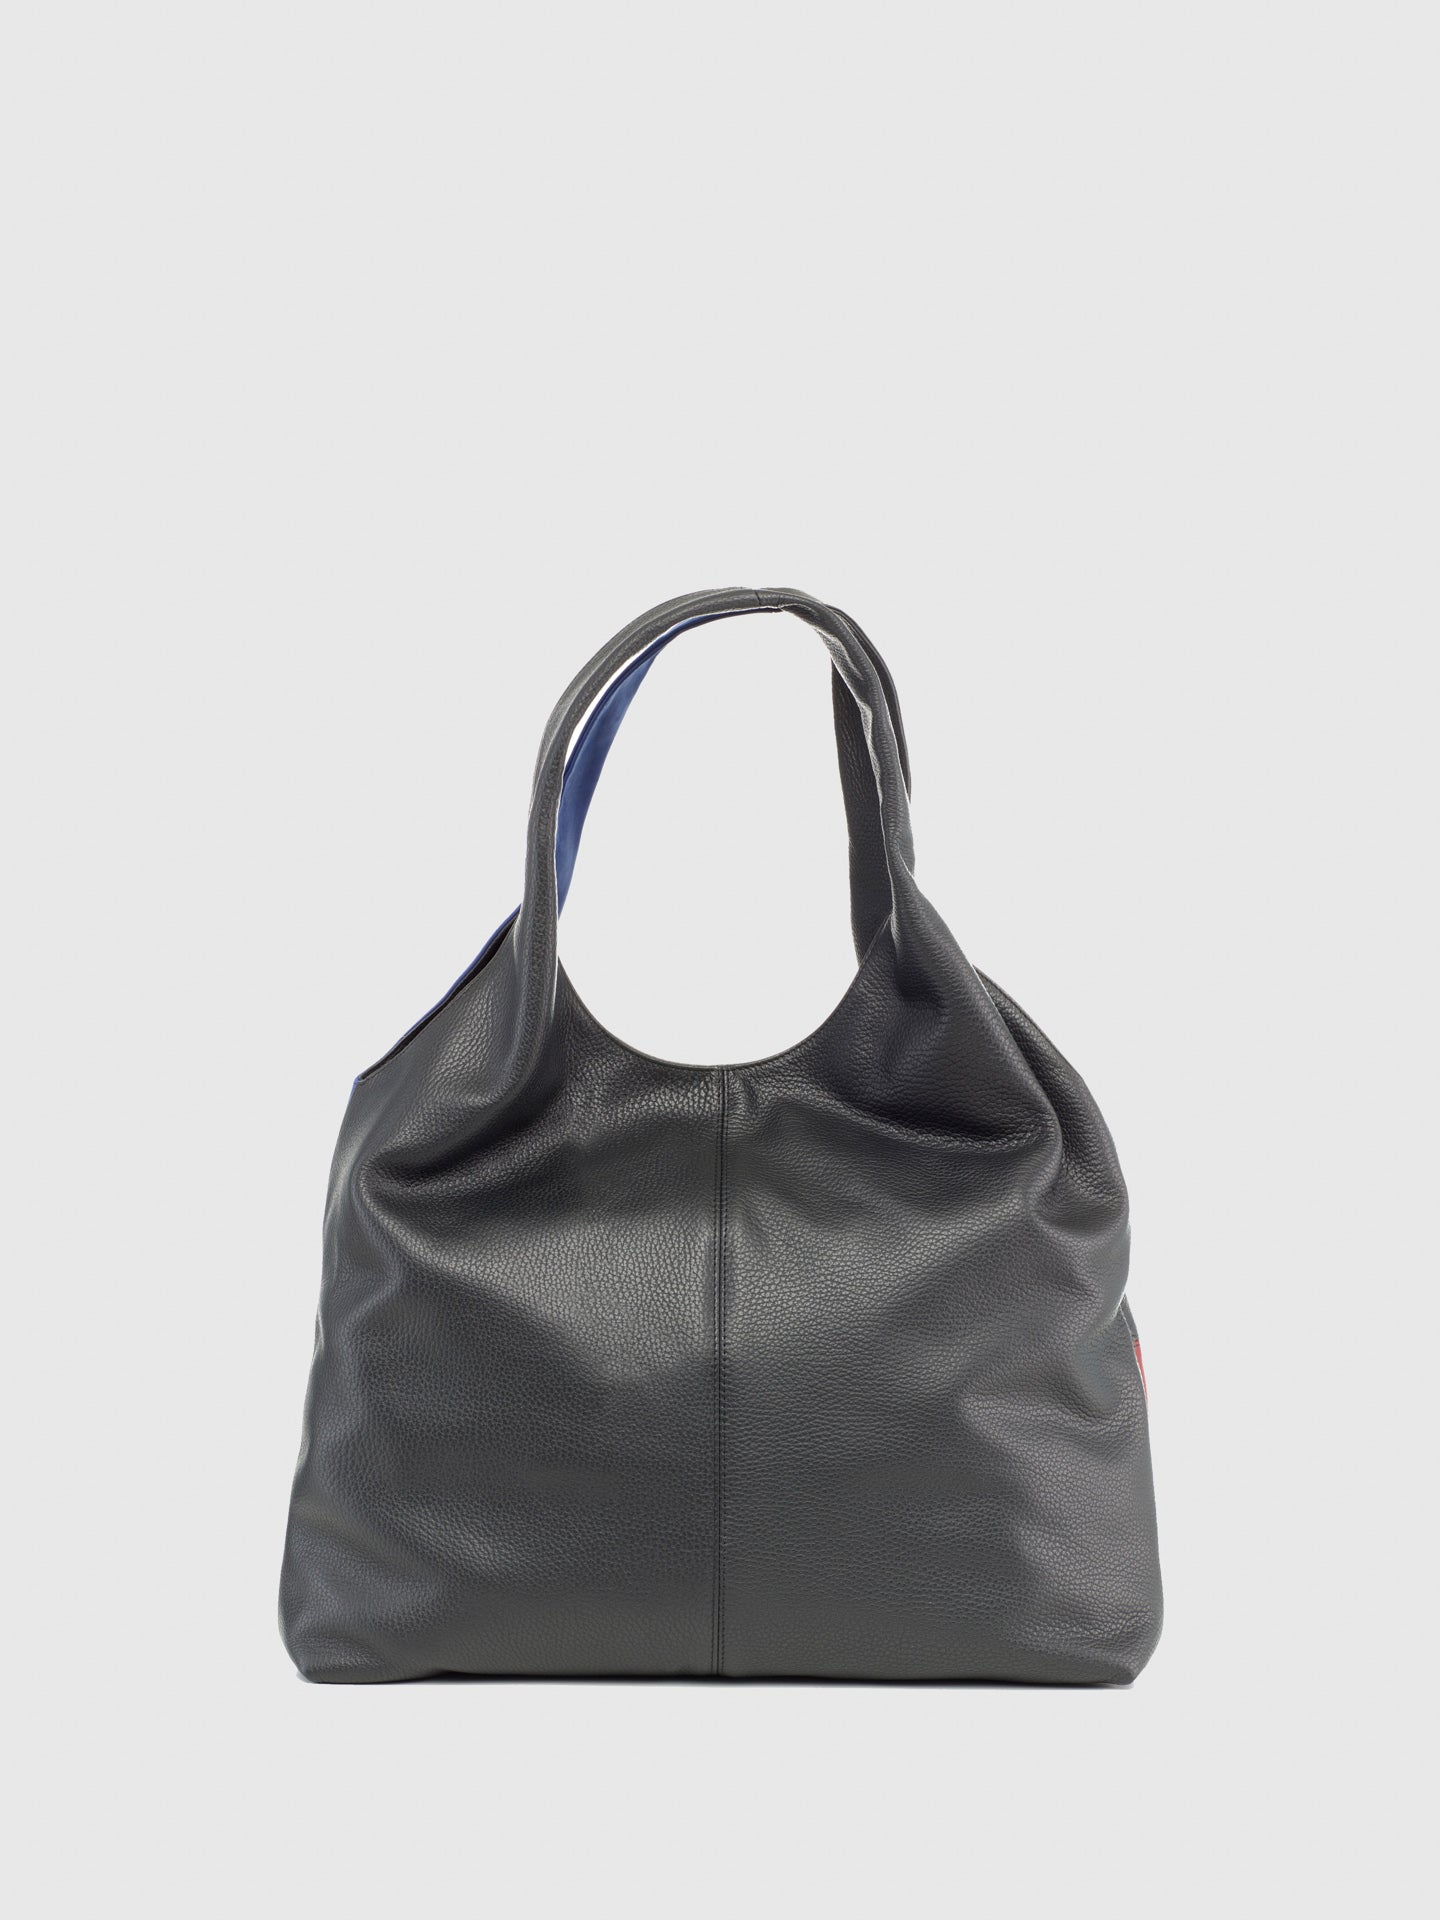 Maria Maleta Black Leather Shoulder Bag